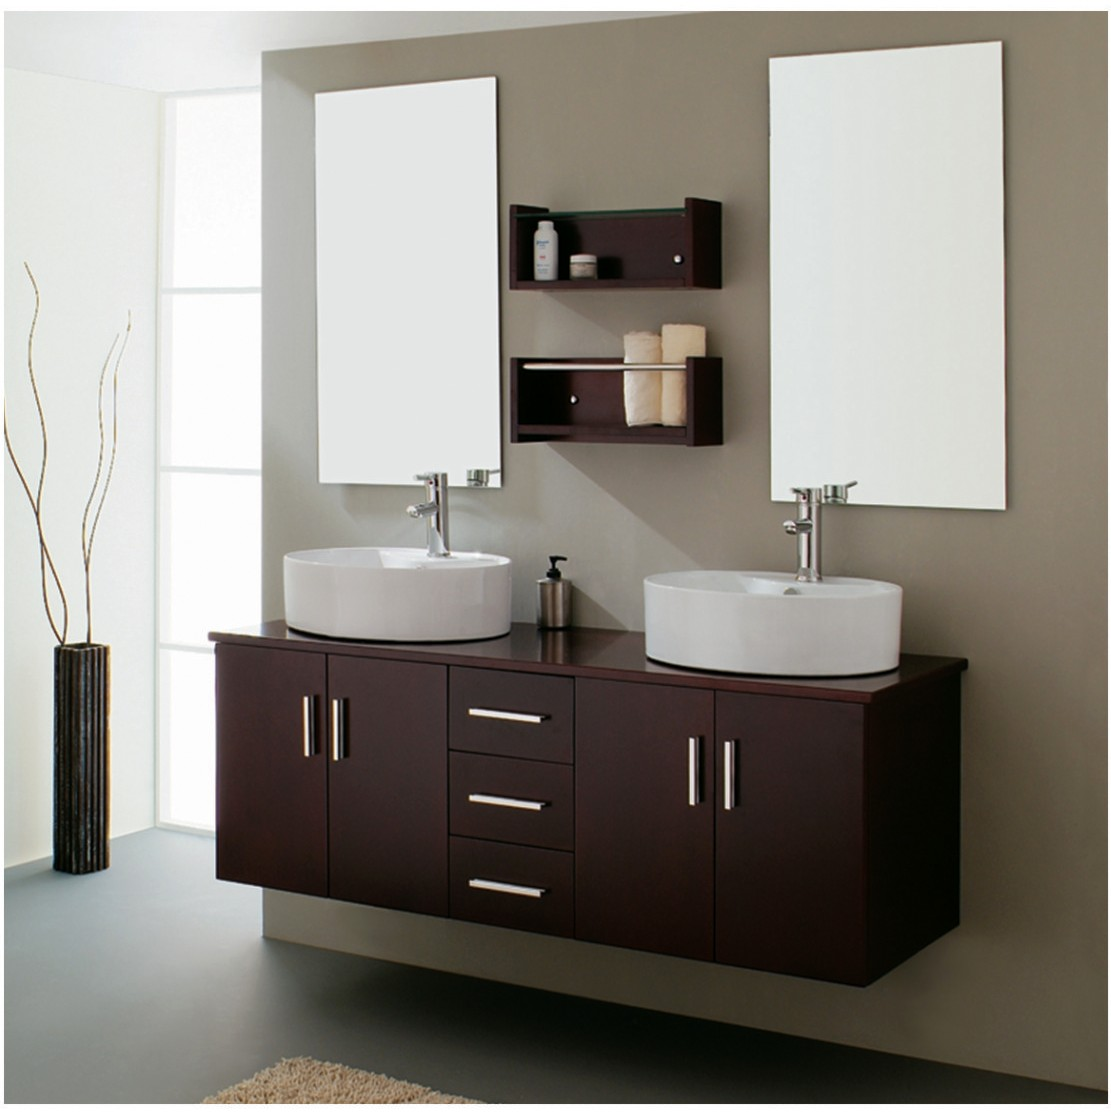 Use Floating Oak Bathroom Sink Cabinets and Round Sink Bowls under Clean Wall Mirrors on Grey Wall